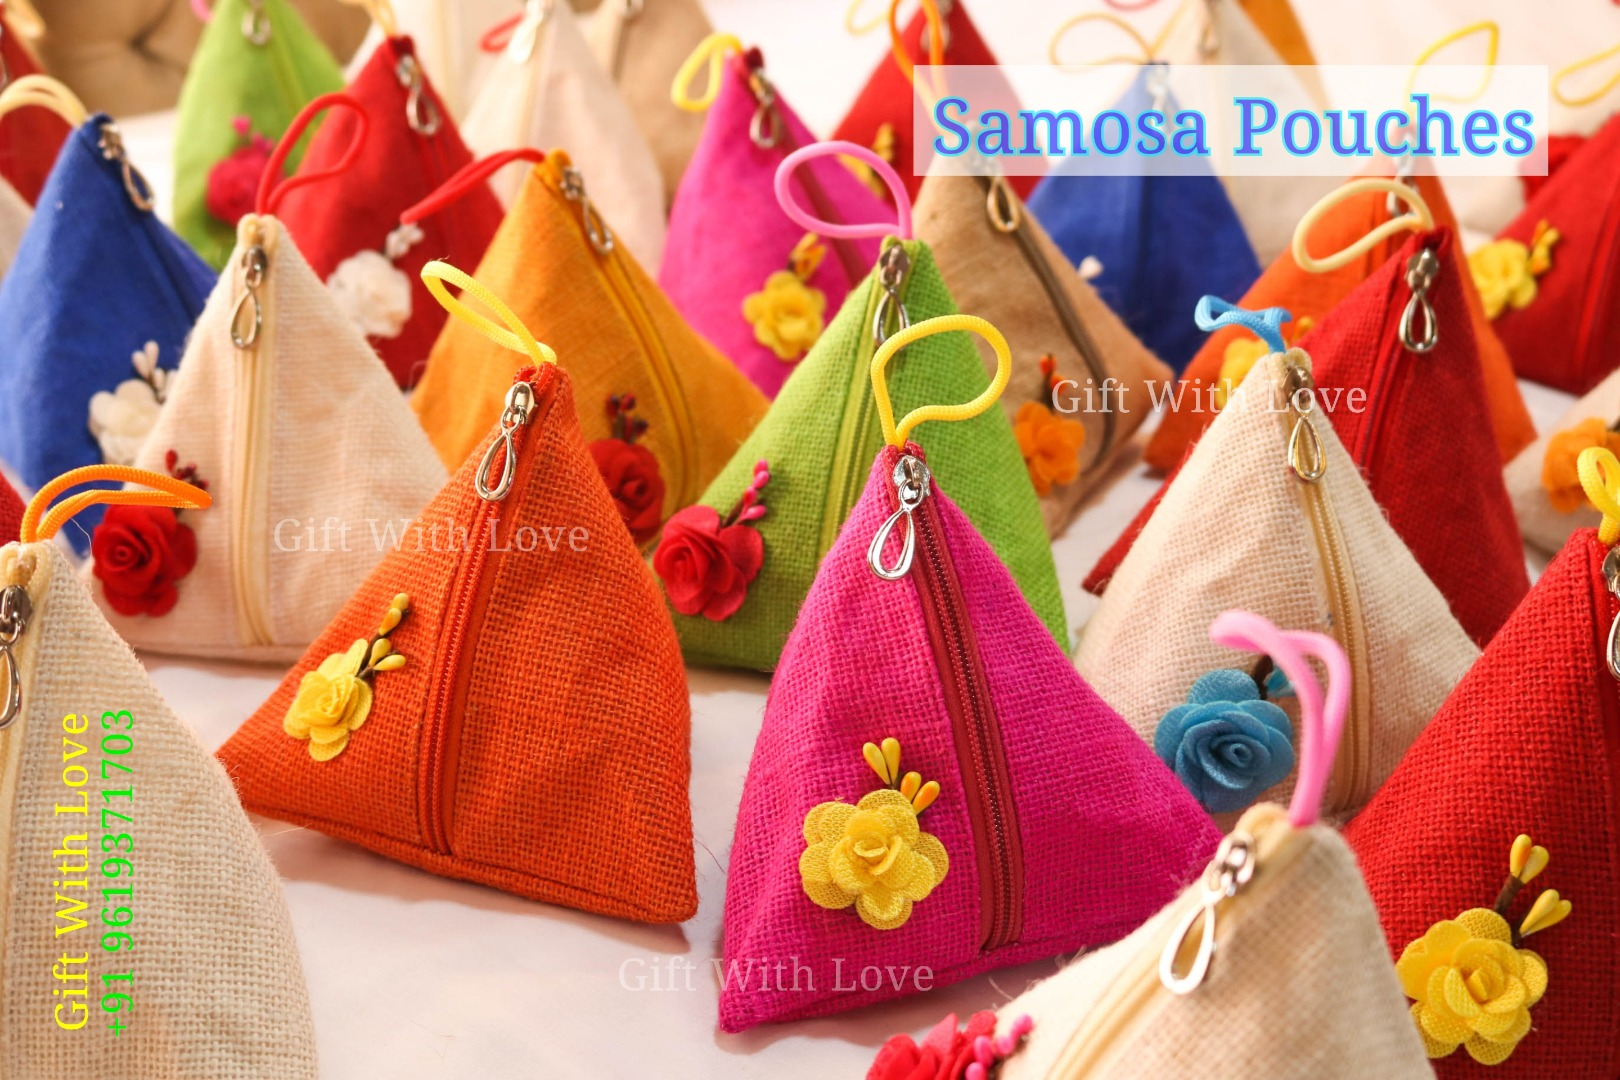 colourful samosa pouches as wedding favors